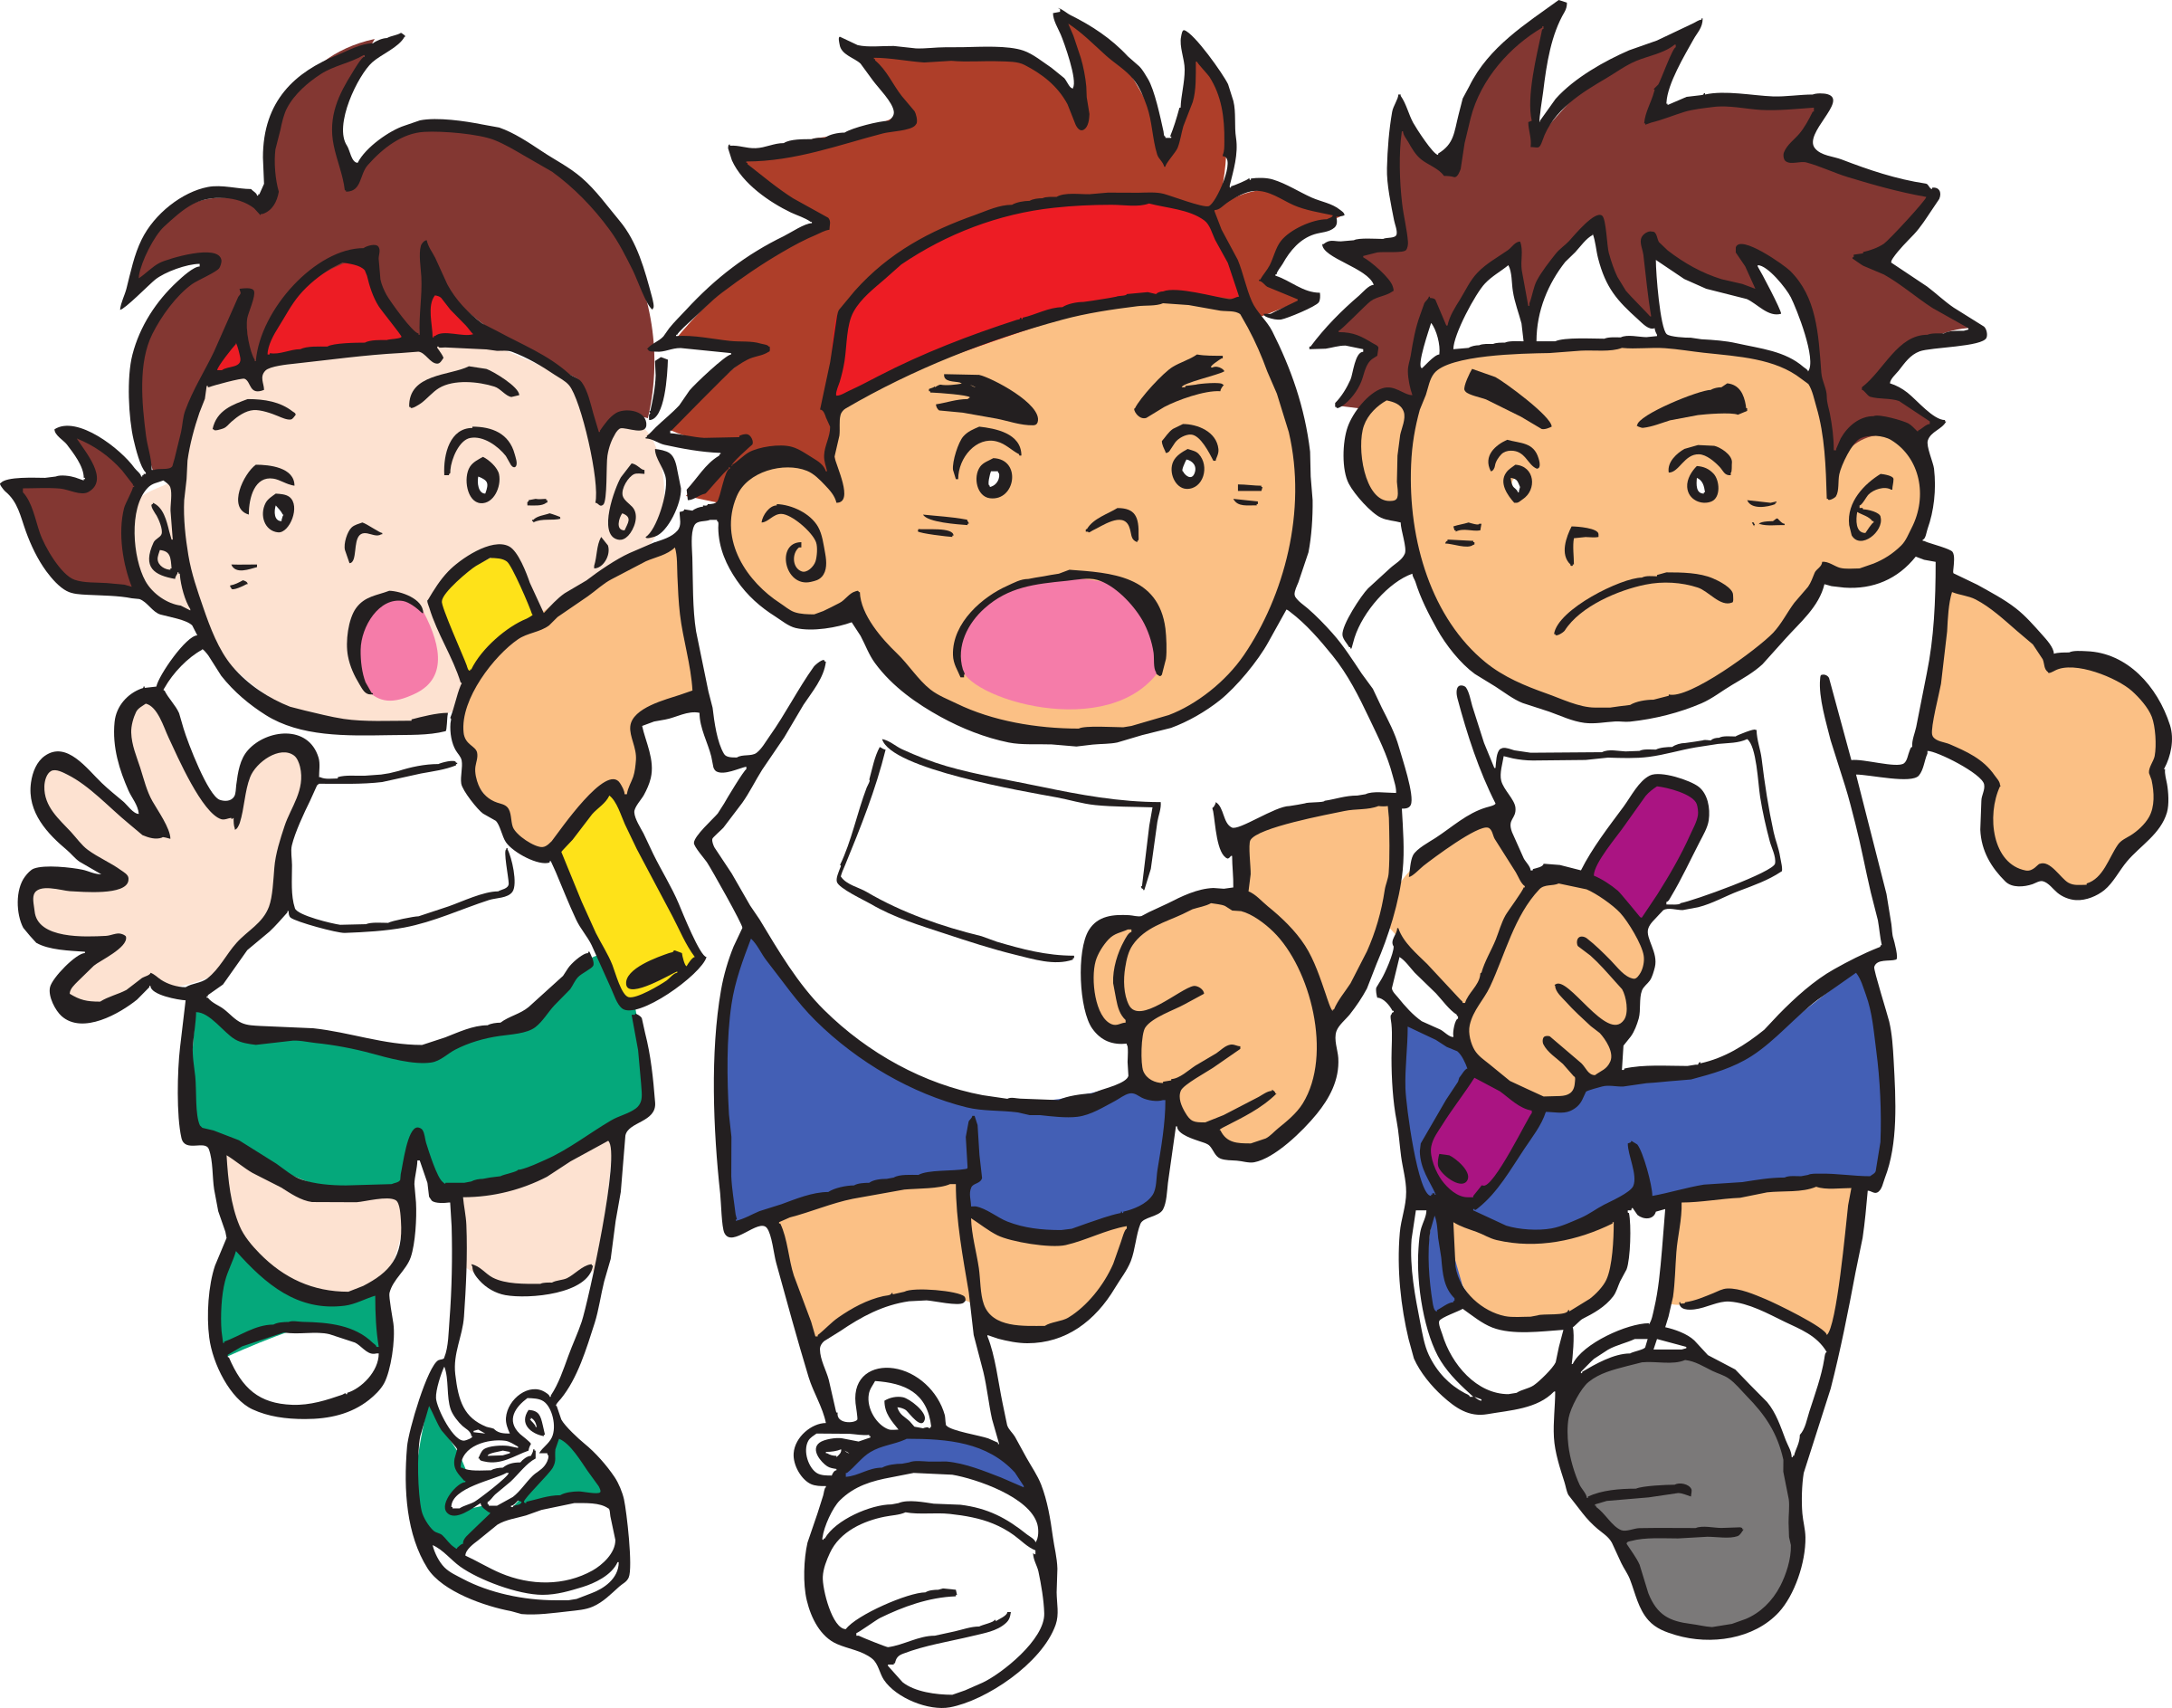 Children clipart sport. Sports day big image